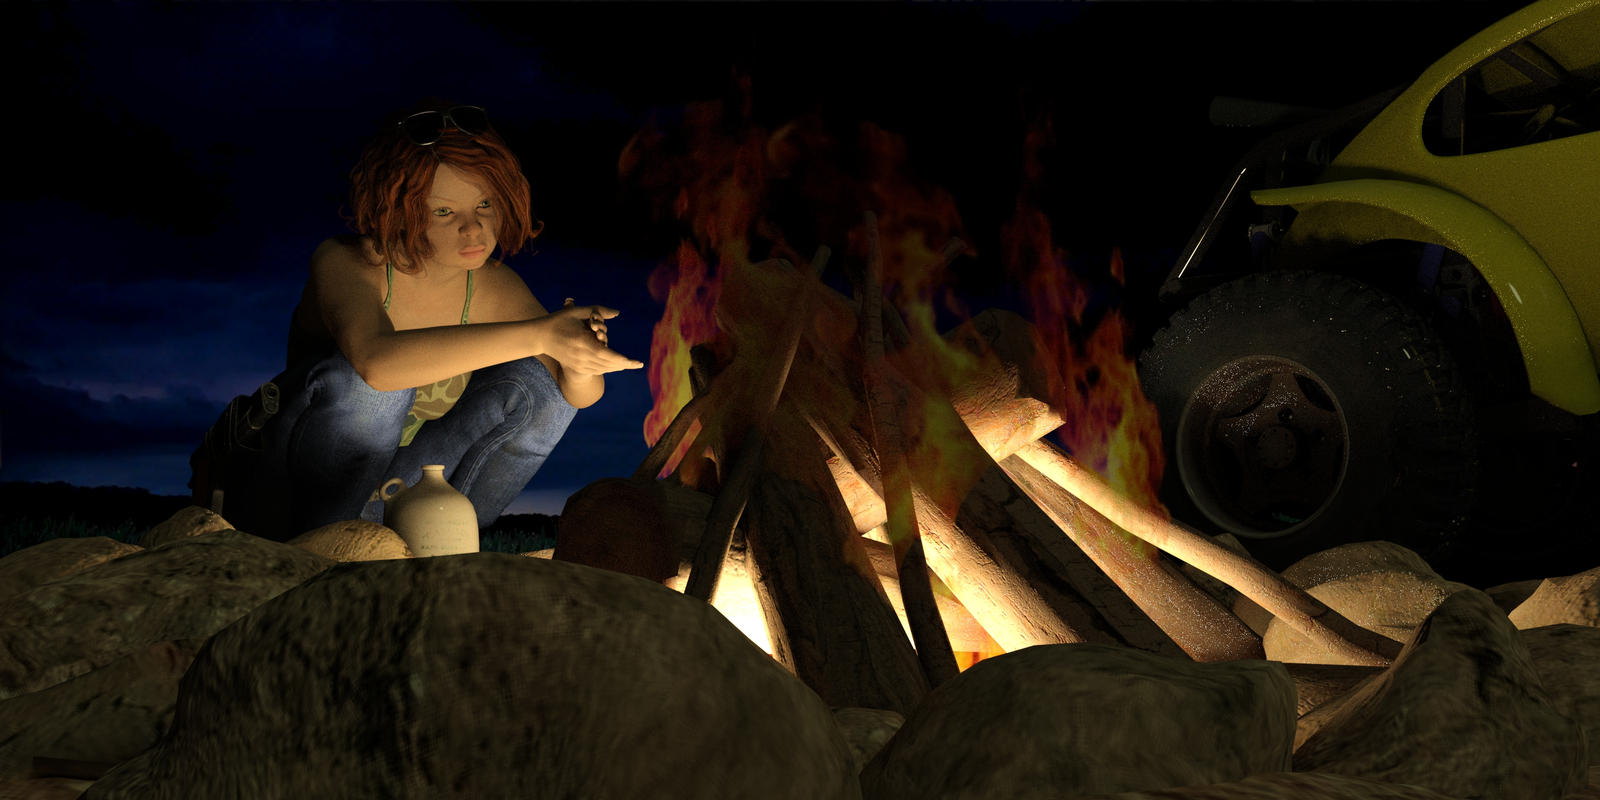 SexyRoxy The Hunters Campfire 002 by thomvinson